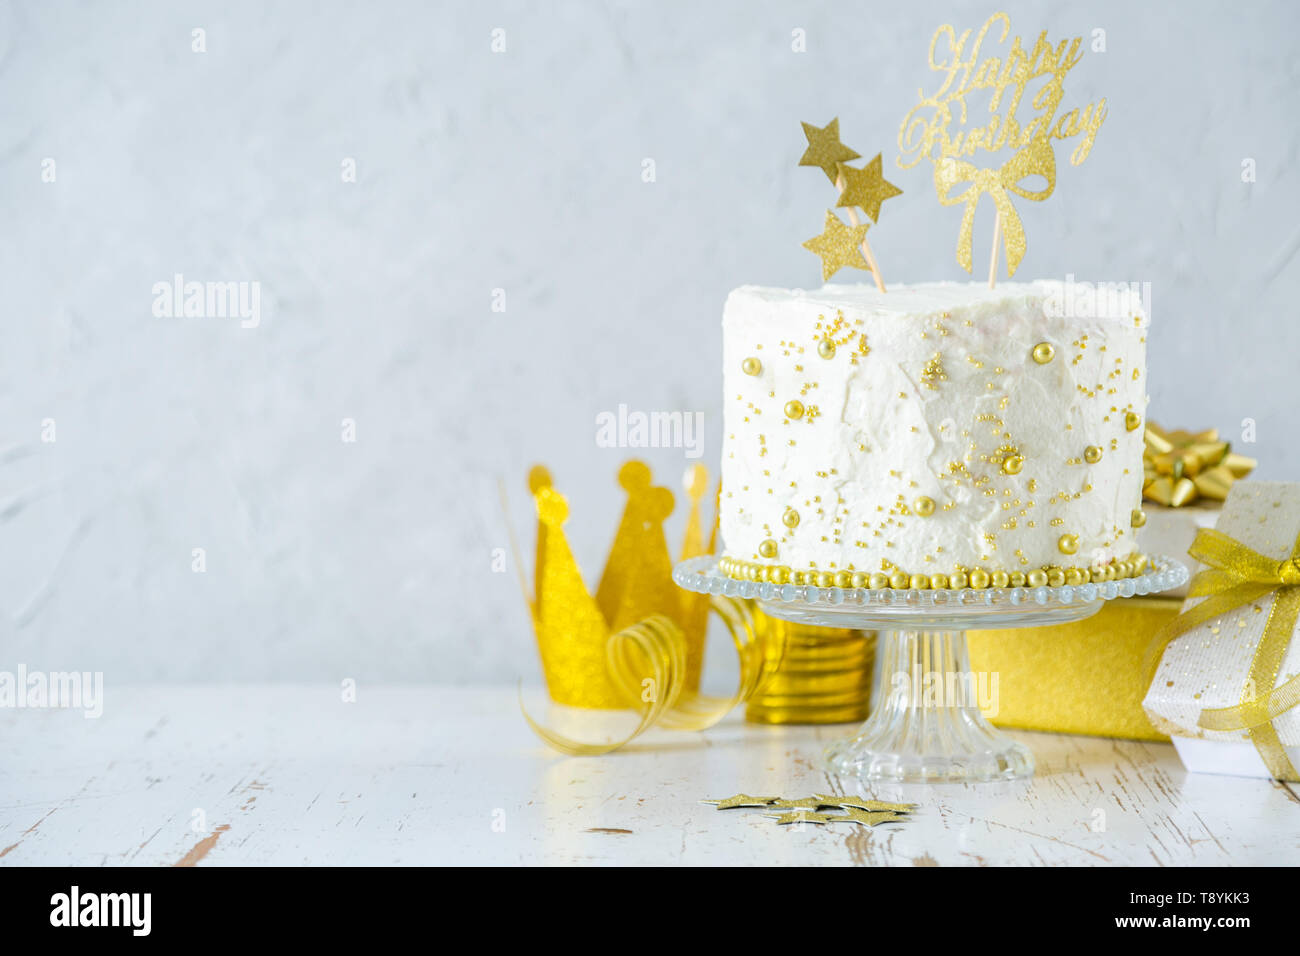 Peachy Golden Birthday Concept Cake Presents Decorations Stock Photo Funny Birthday Cards Online Alyptdamsfinfo